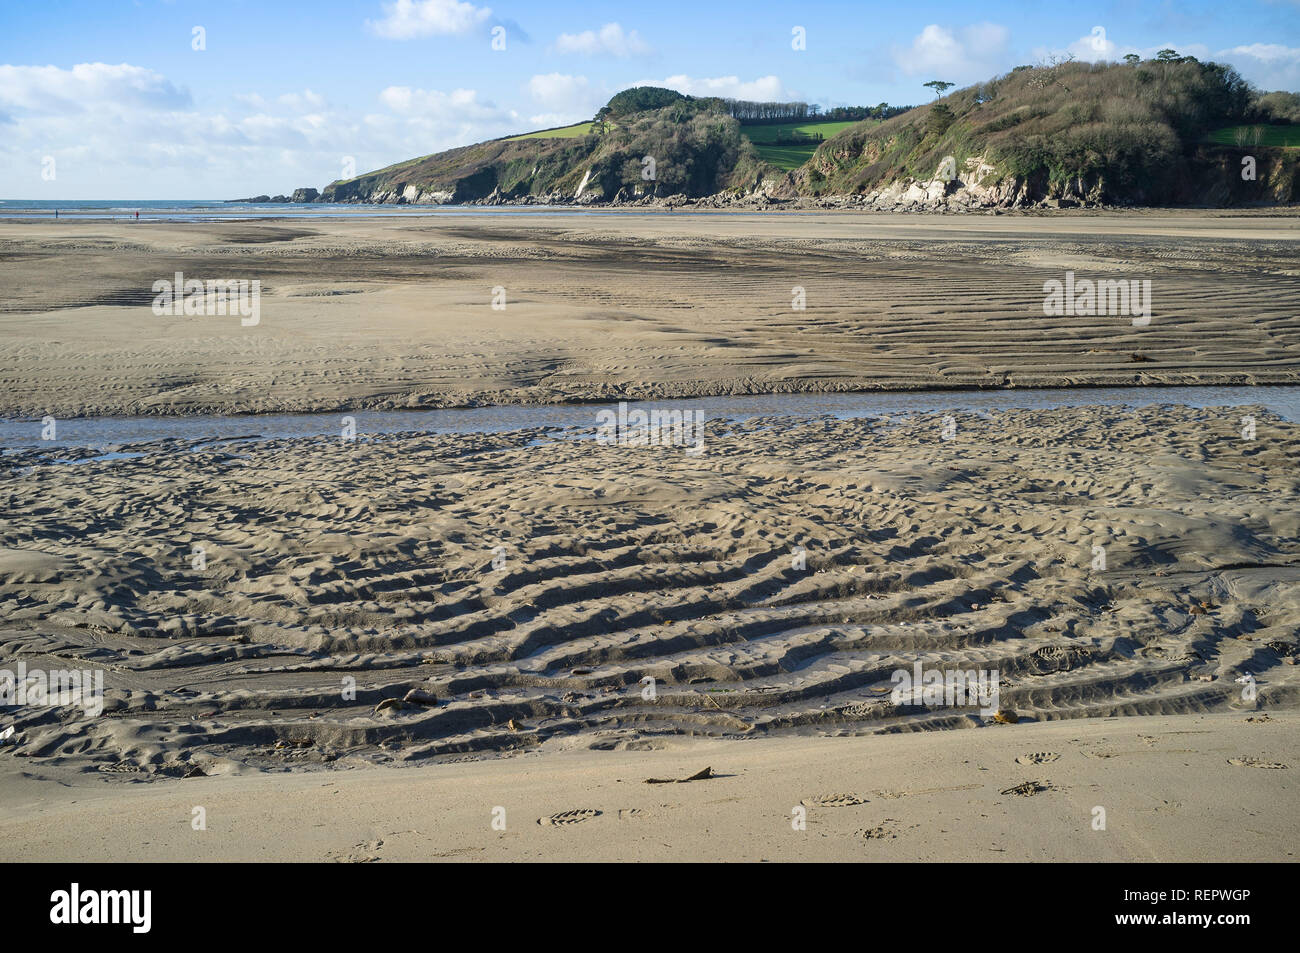 View of rippled sands on Wonwell Beach at low tide, Kingston, South Hams, Devon, UK - Stock Image